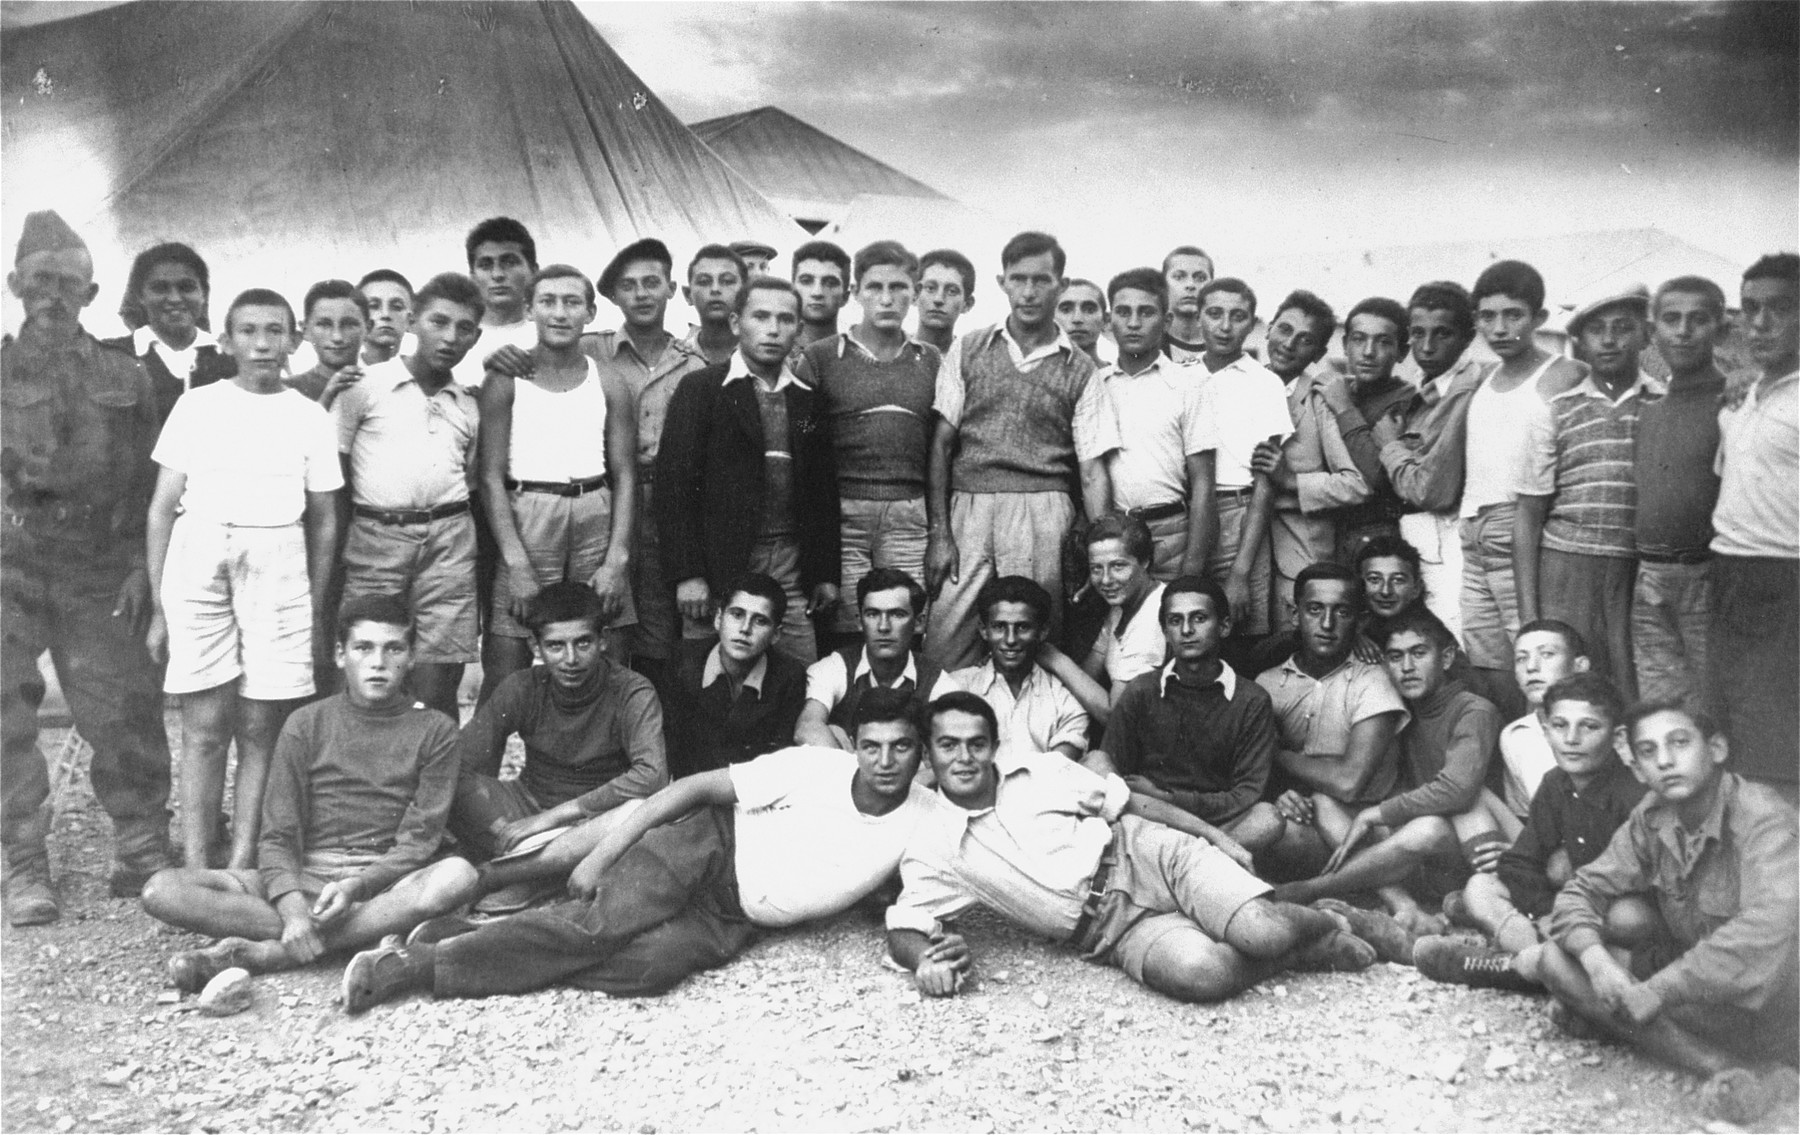 Group portrait of older members of the Teheran children's transport in a refugee camp in Teheran.